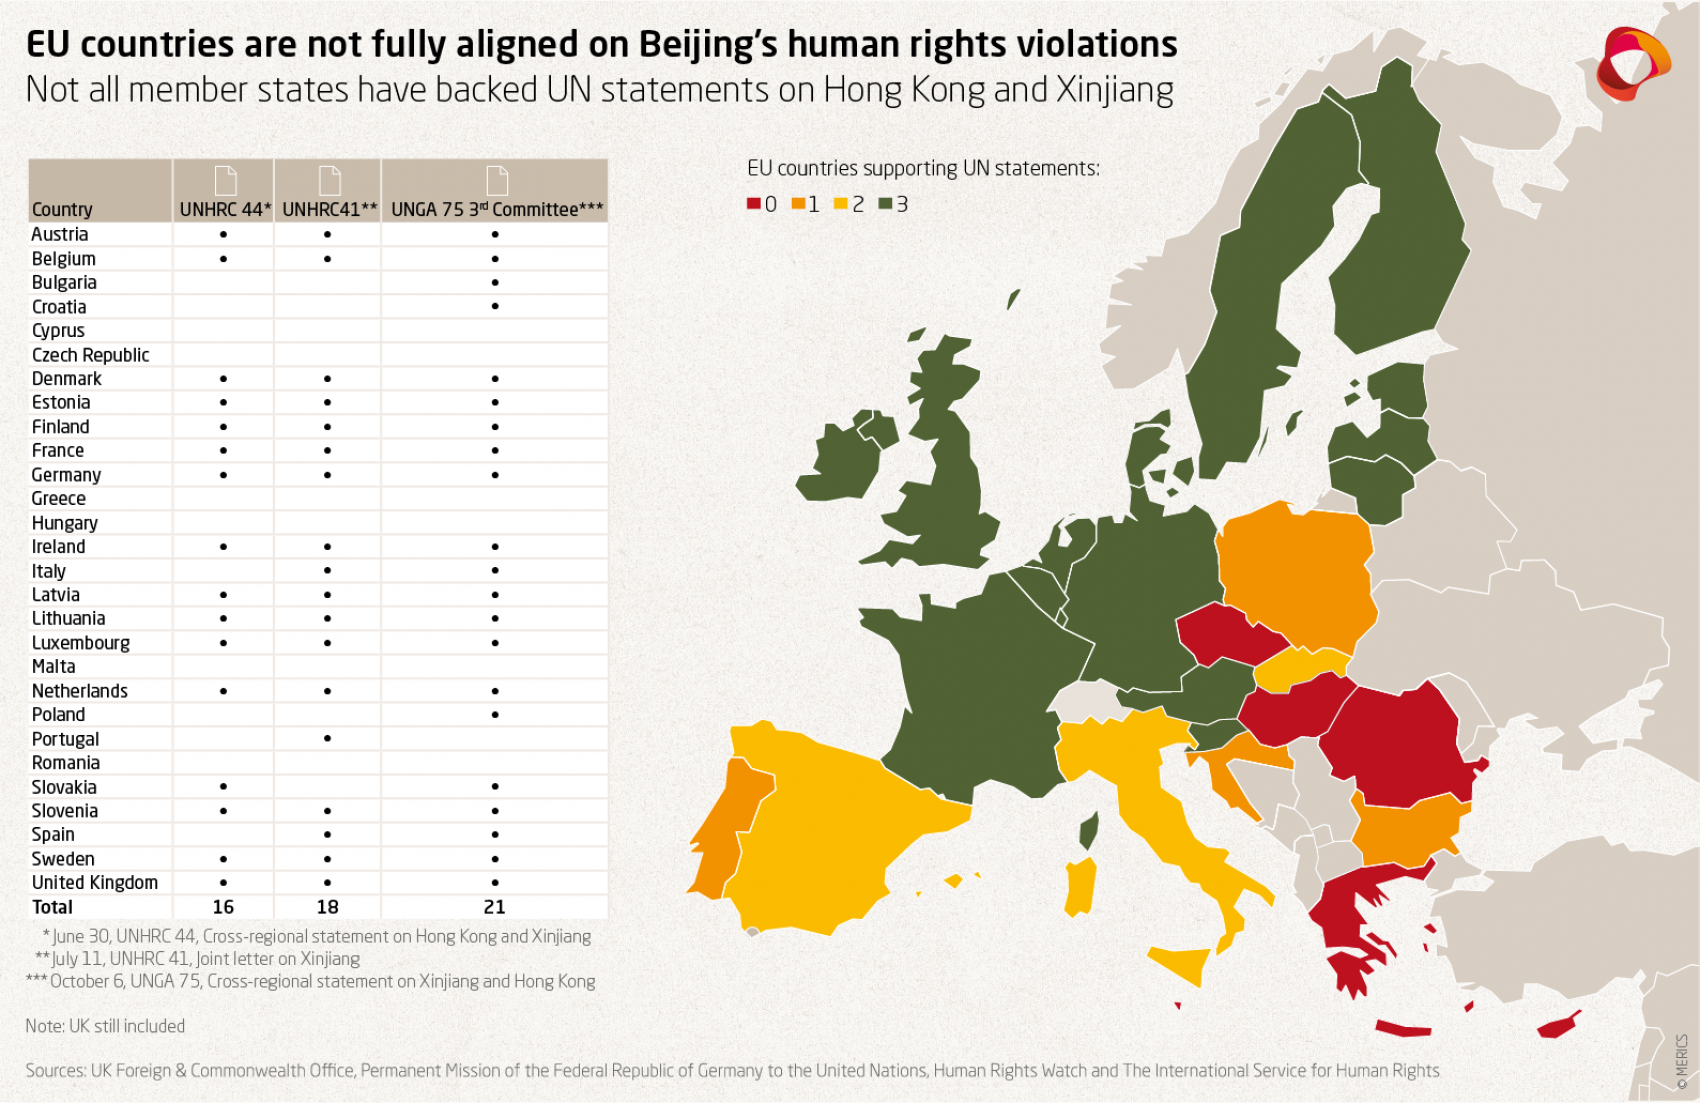 Map showing EU member states support for UN statements on Beijing's human rights violations